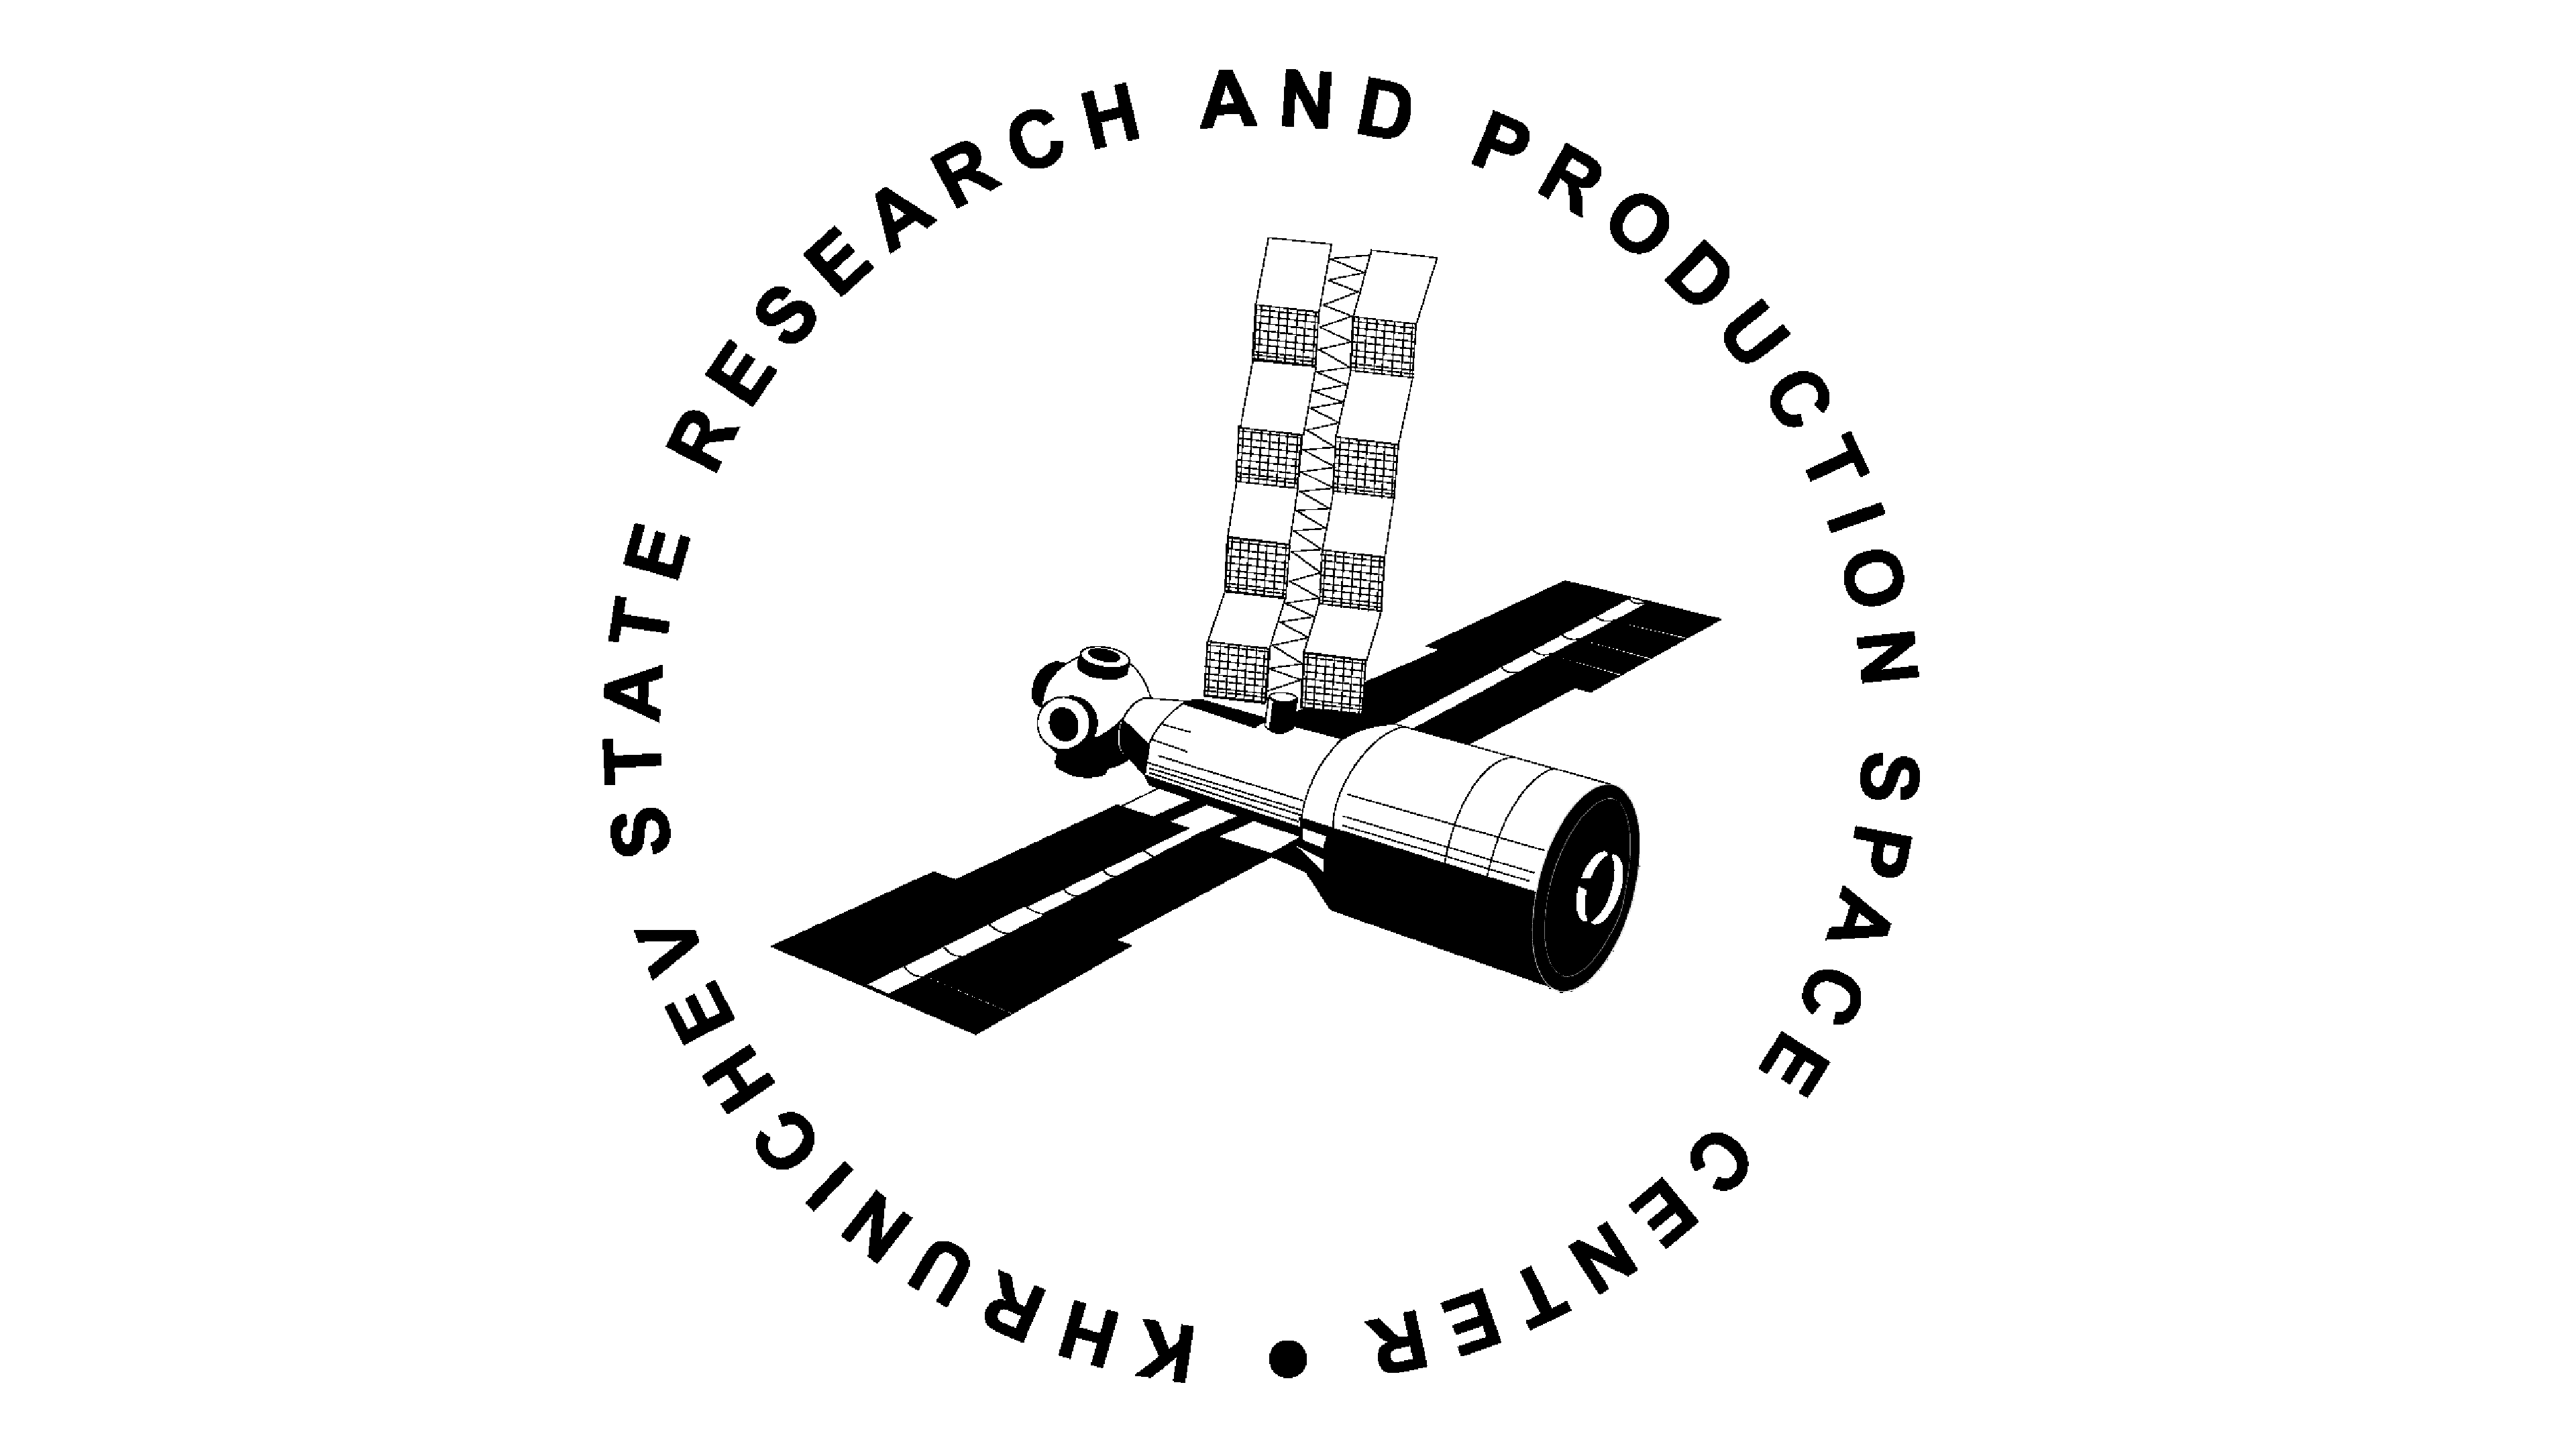 Khrunichev State Research and Production Space Center Logo Logo